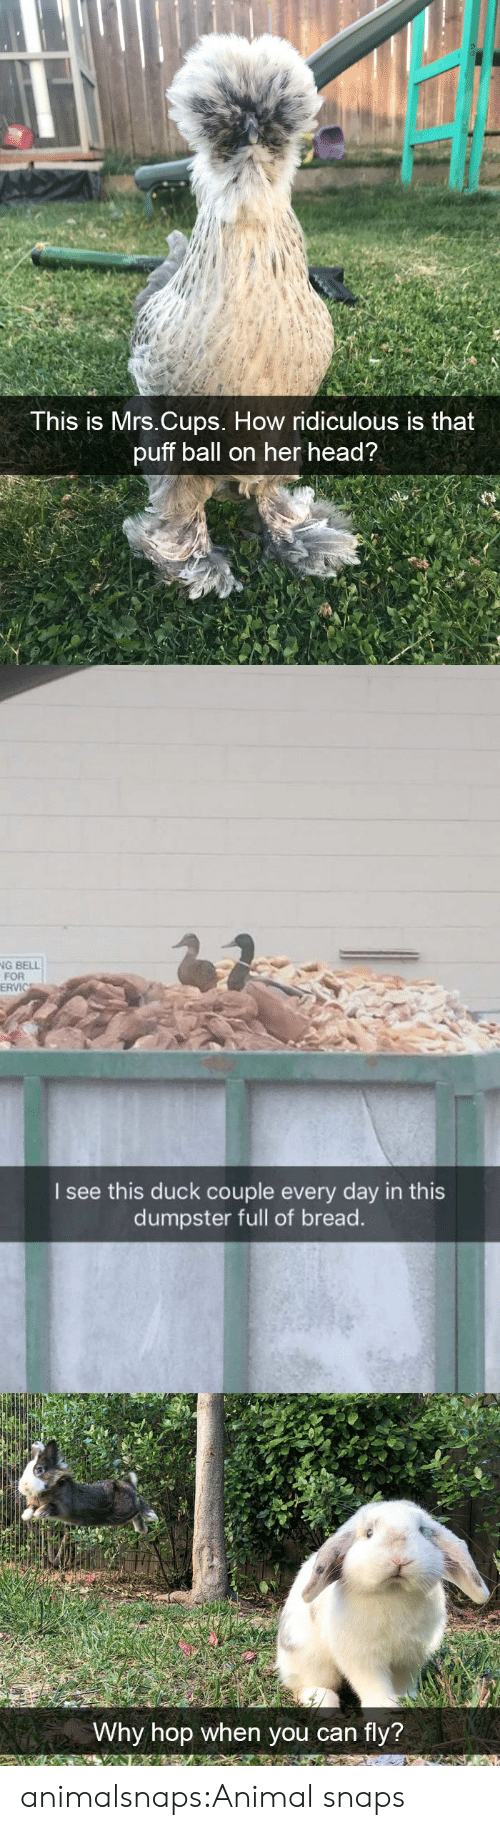 Head, Target, and Tumblr: This is Mrs.Cups. How ridiculous is that  puff ball on her head?   G BELL  FOR  ERVIC  I see this duck couple every day in this  dumpster full of bread.   Why hop when you can fly? animalsnaps:Animal snaps